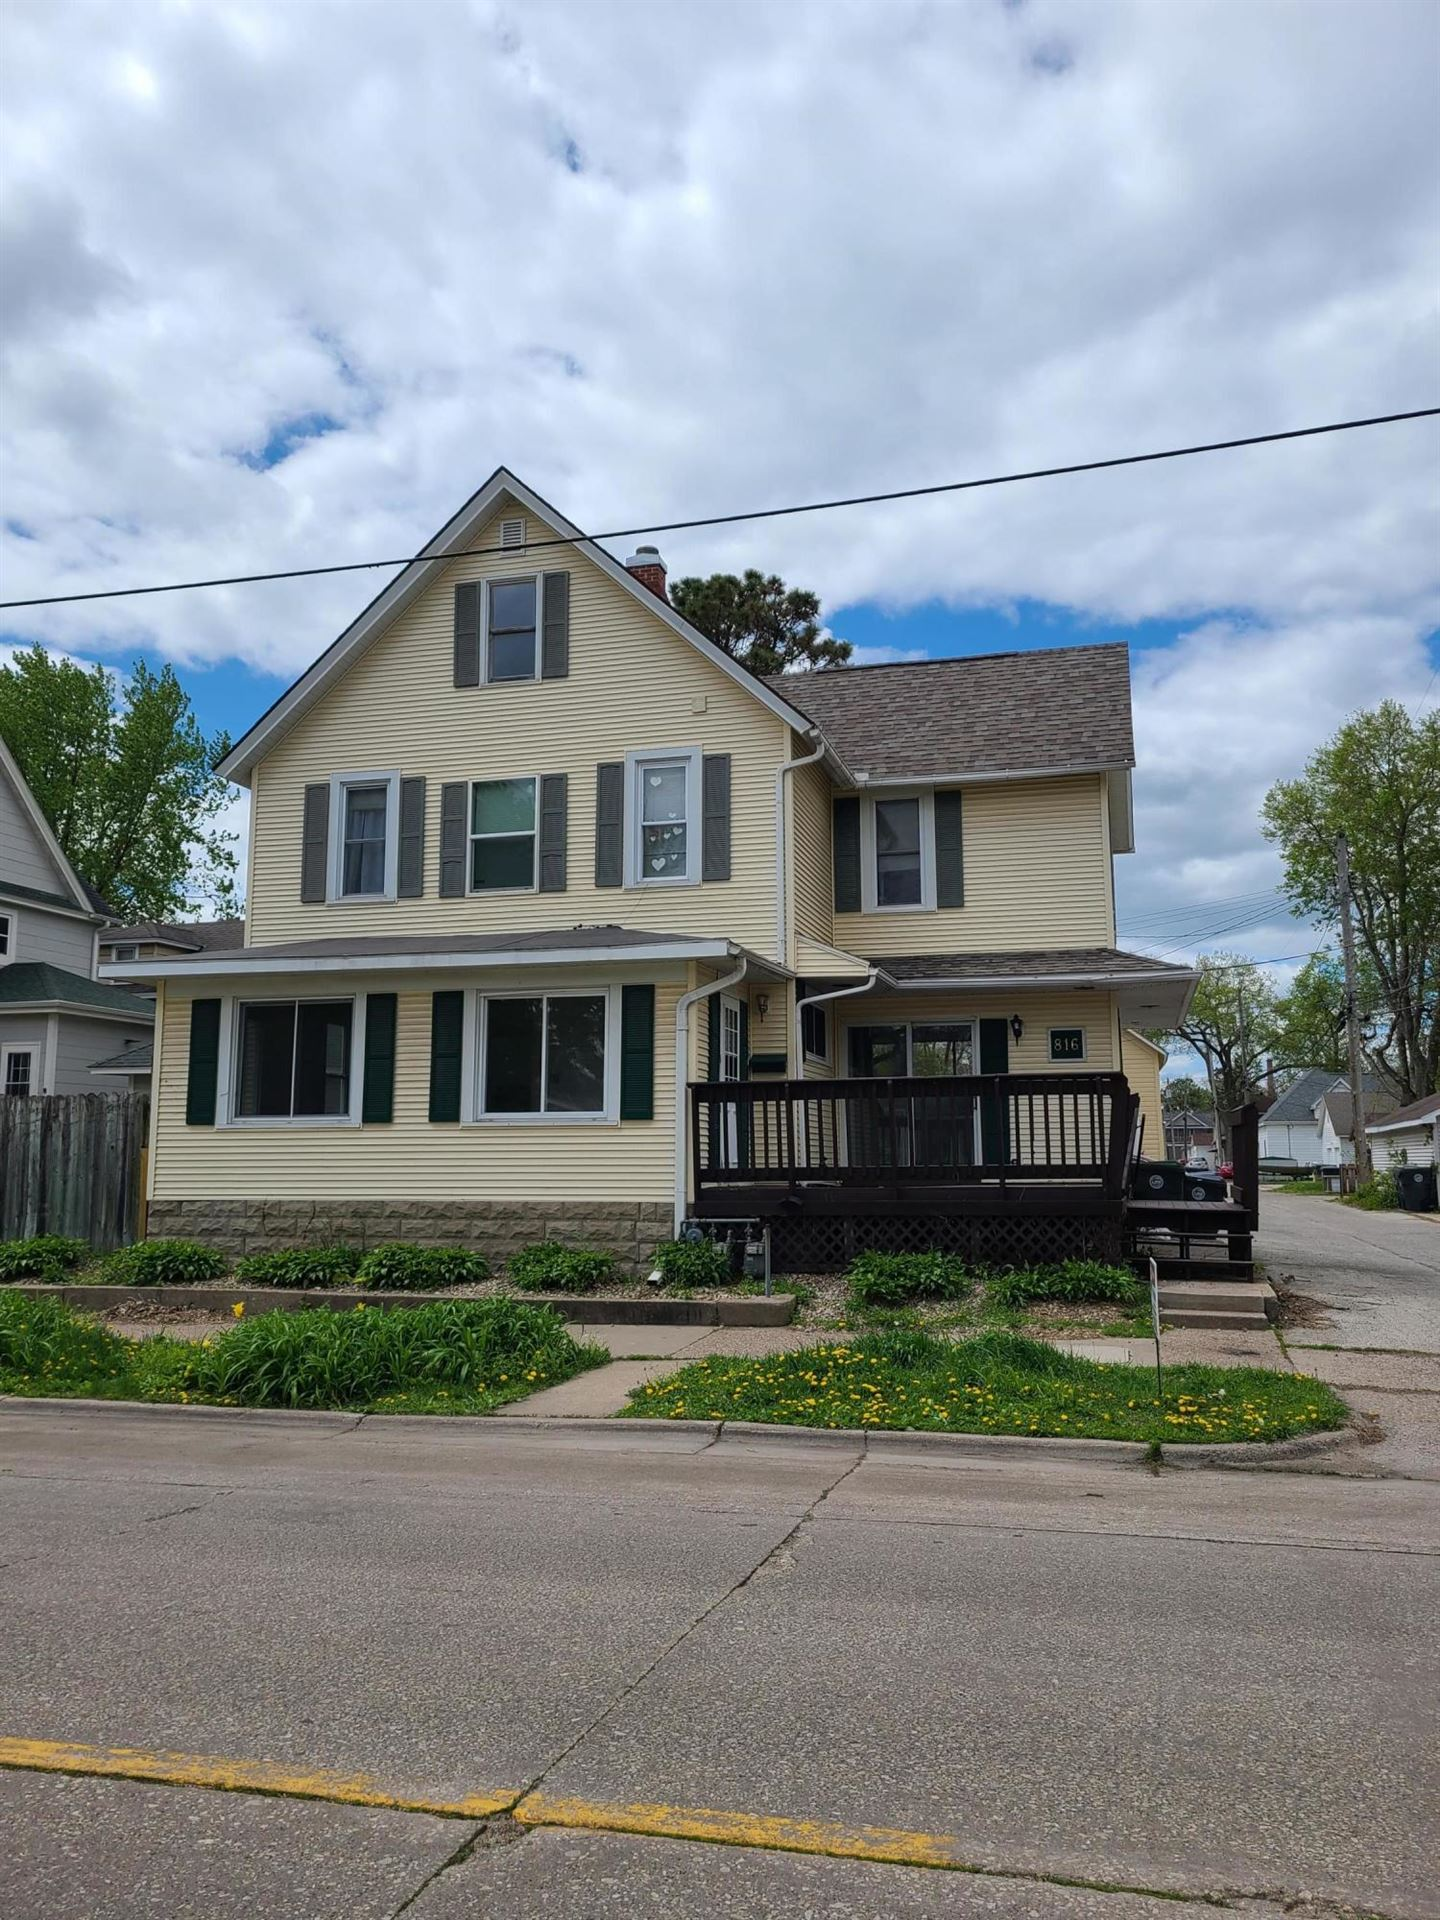 814 16th St S #816, La Crosse, WI 54601 - MLS#: 1739220